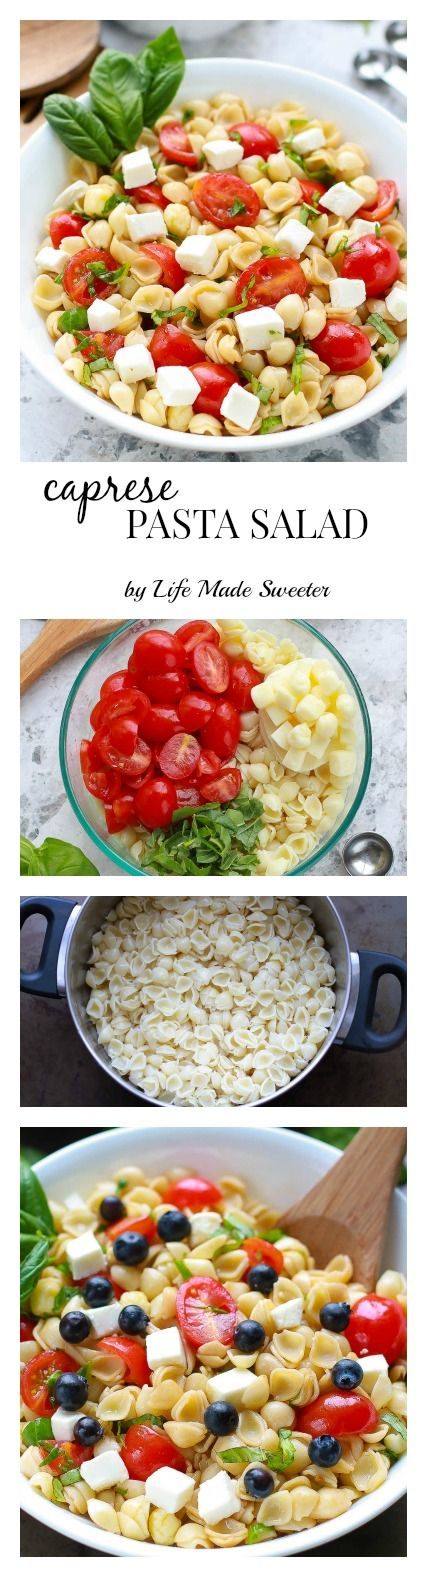 Caprese Pasta Salad The easiest & most delicious caprese pasta salad. Perfect for summer potlucks & BBQ's.